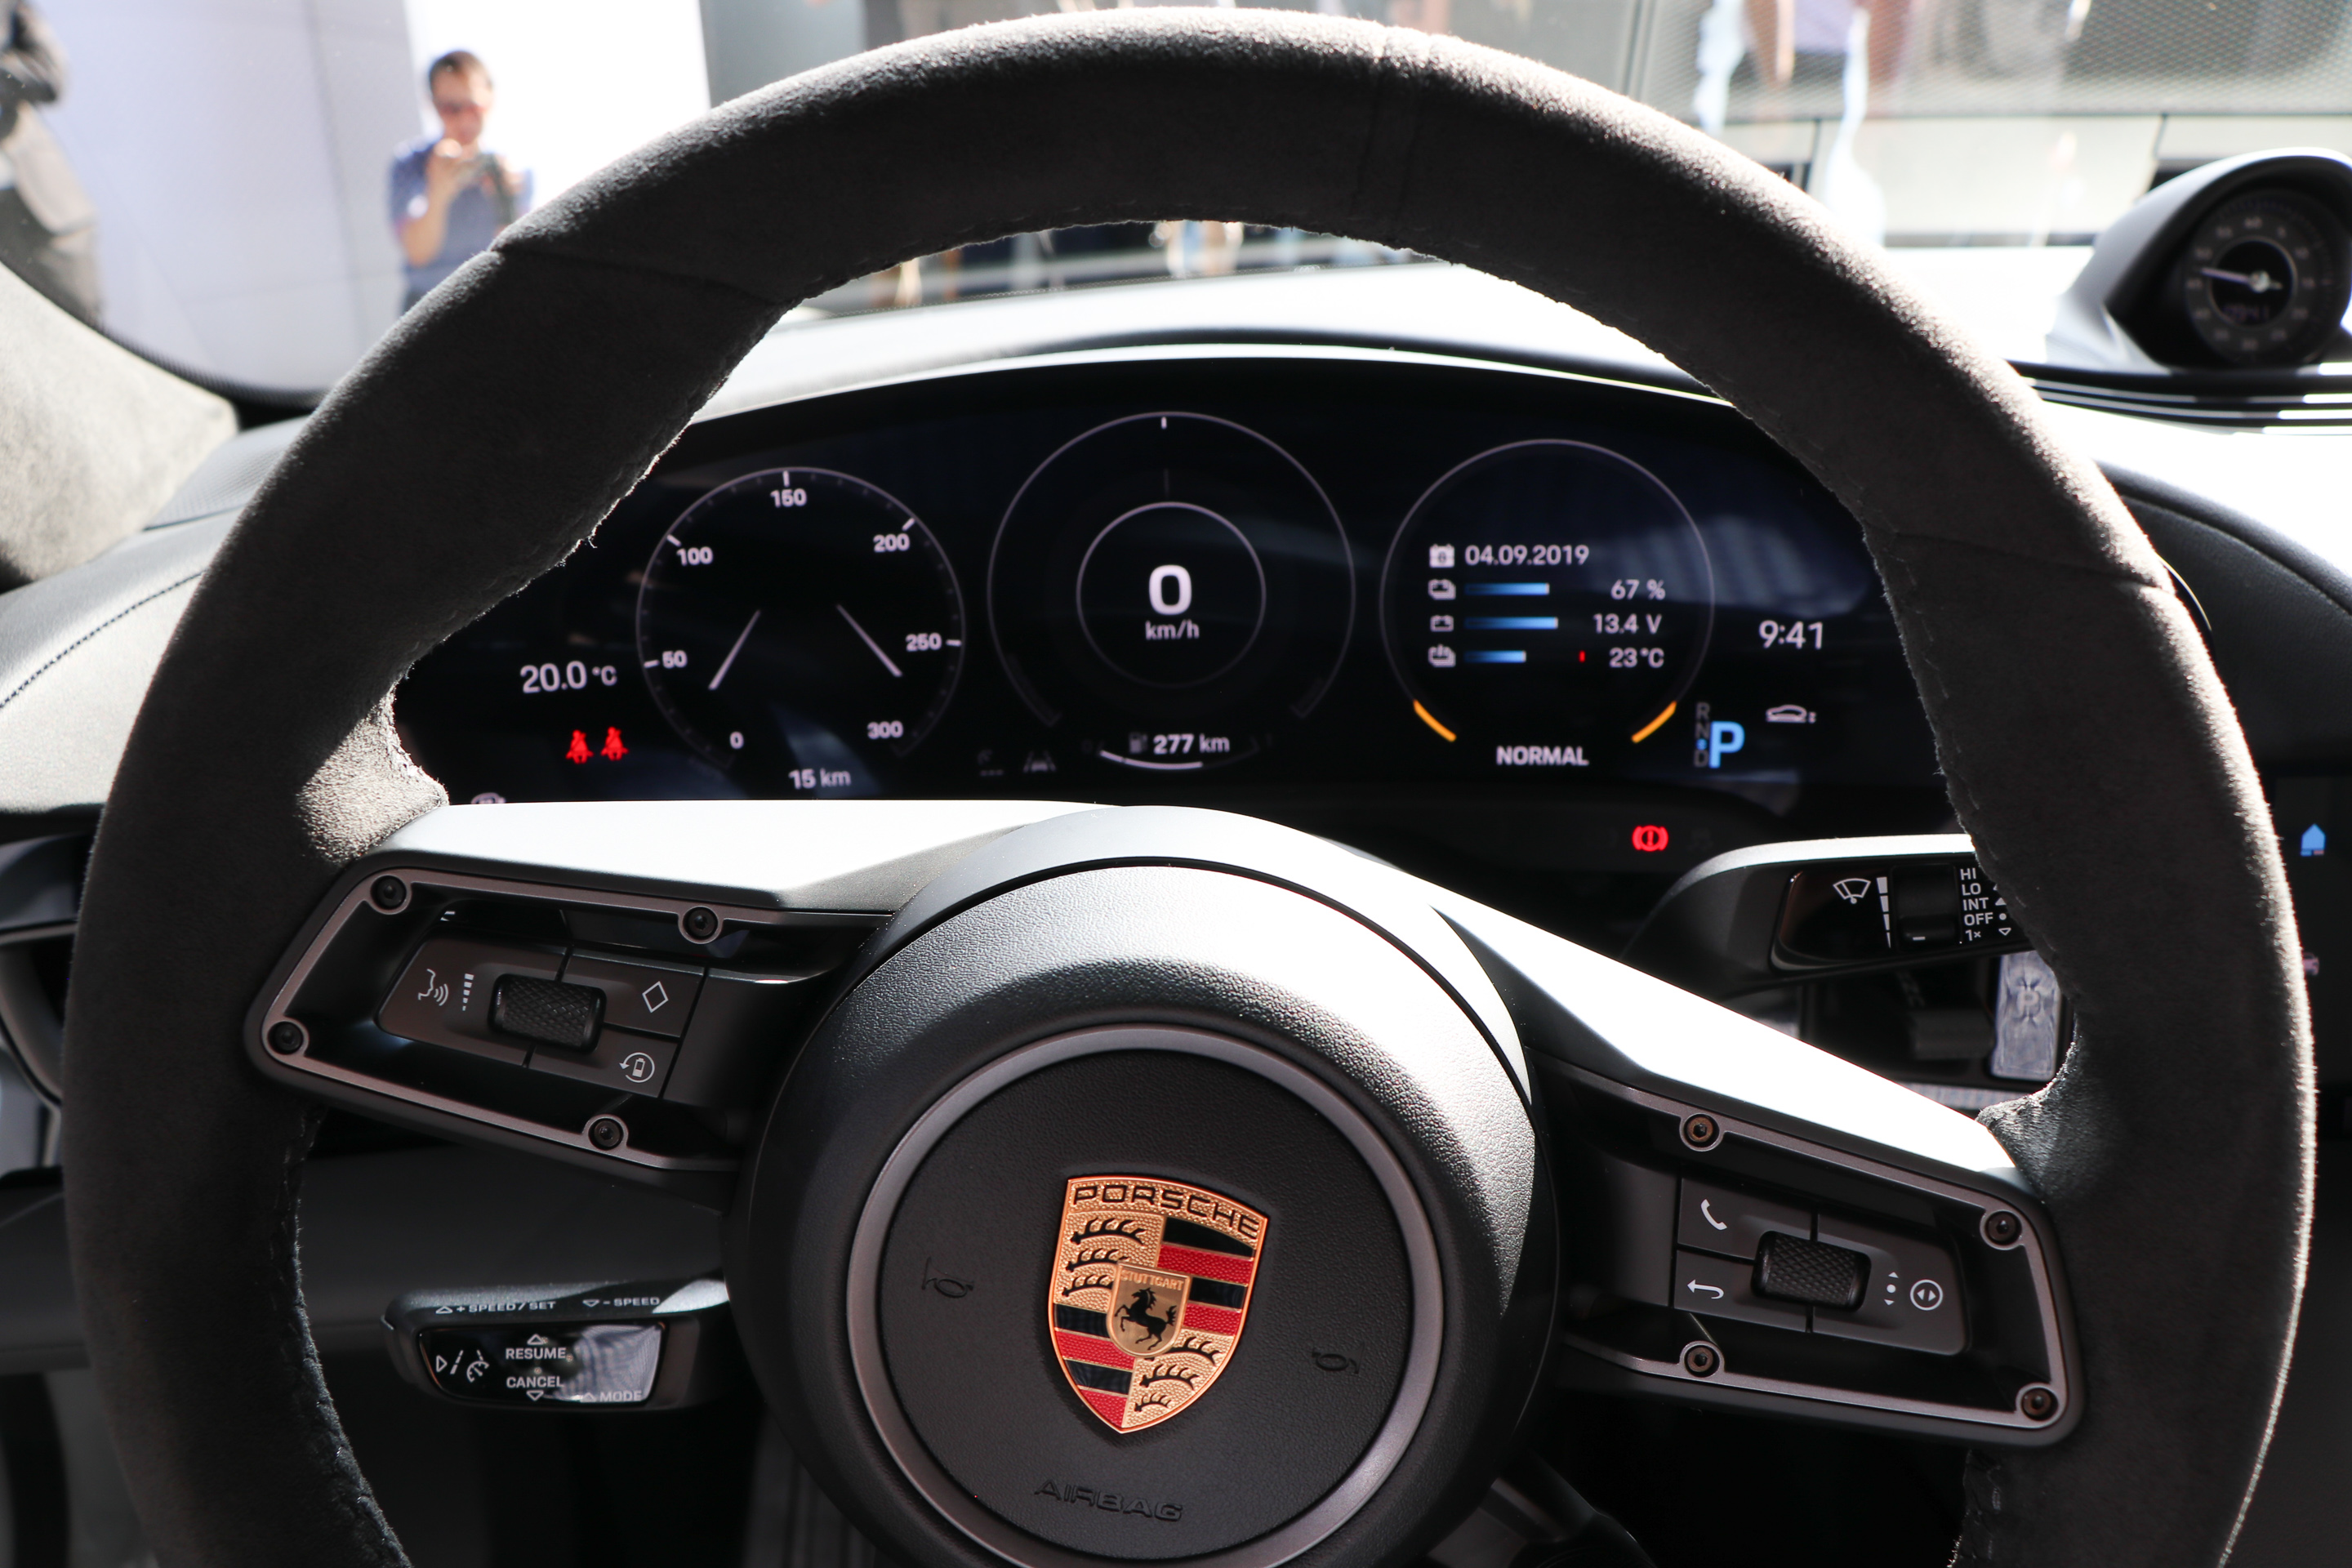 Porsche Taycan S Touchscreens Are Not Like Tesla S But That S A Good Thing